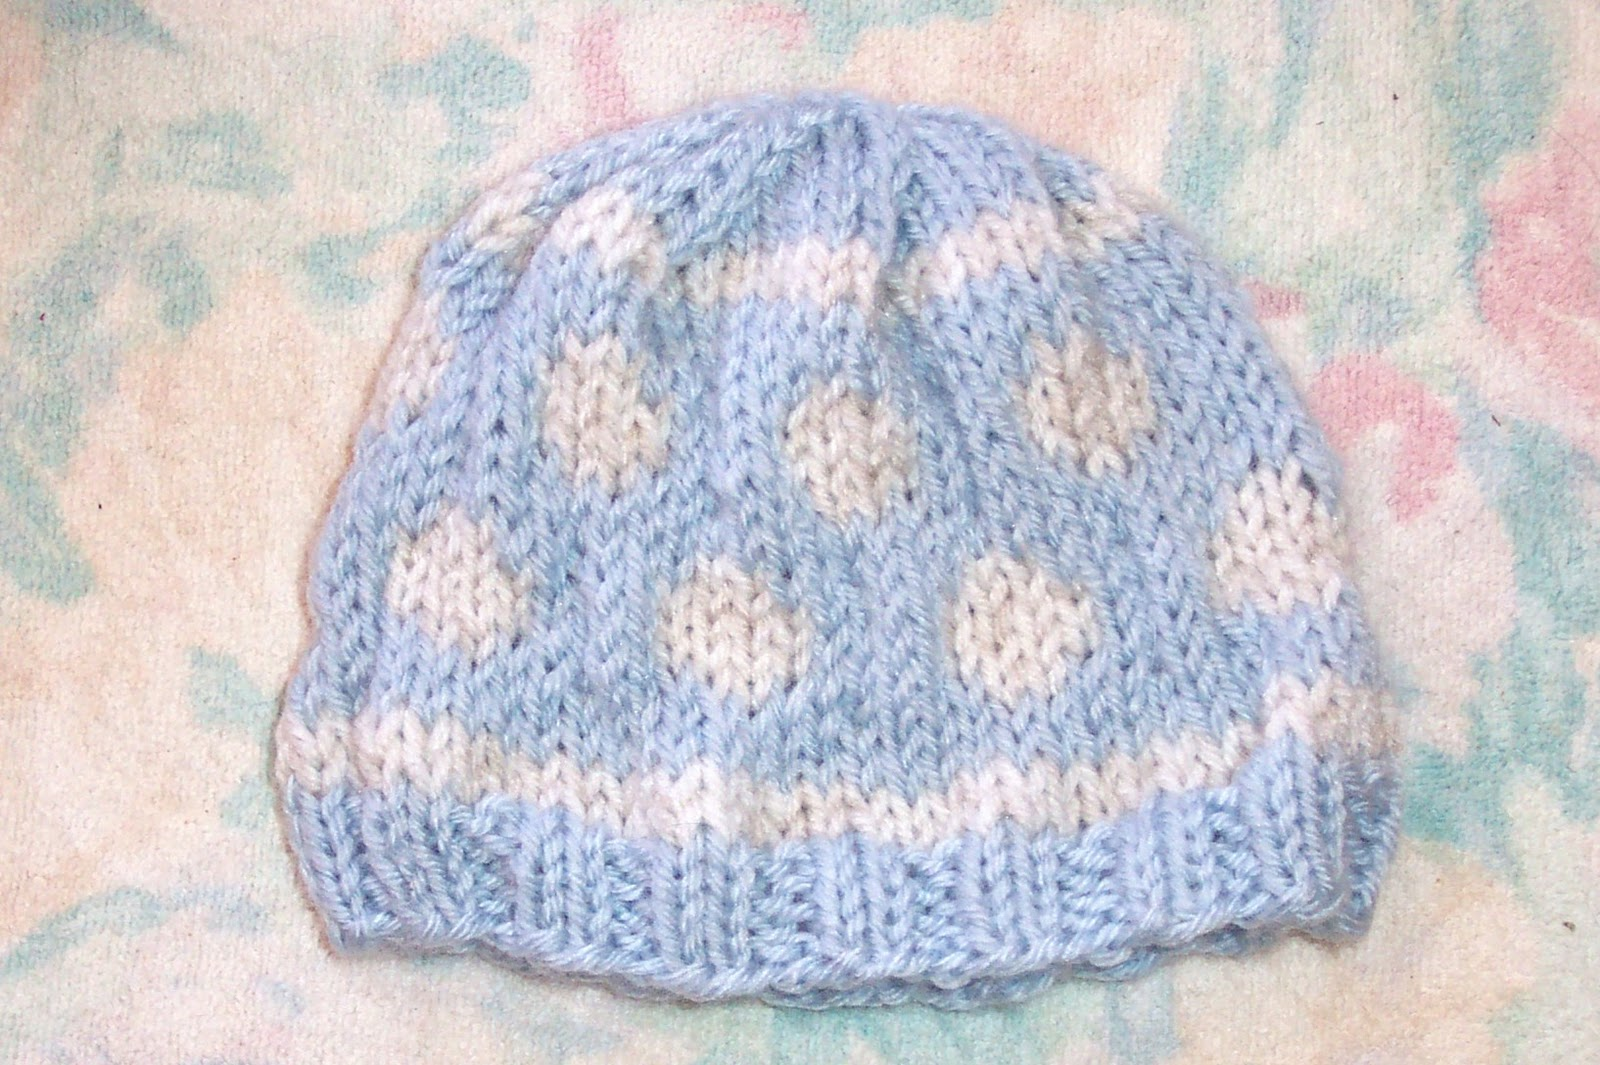 SmoothFox Crochet and Knit: SmoothFox\'s Baby Bubbles Knit Hat - Free ...